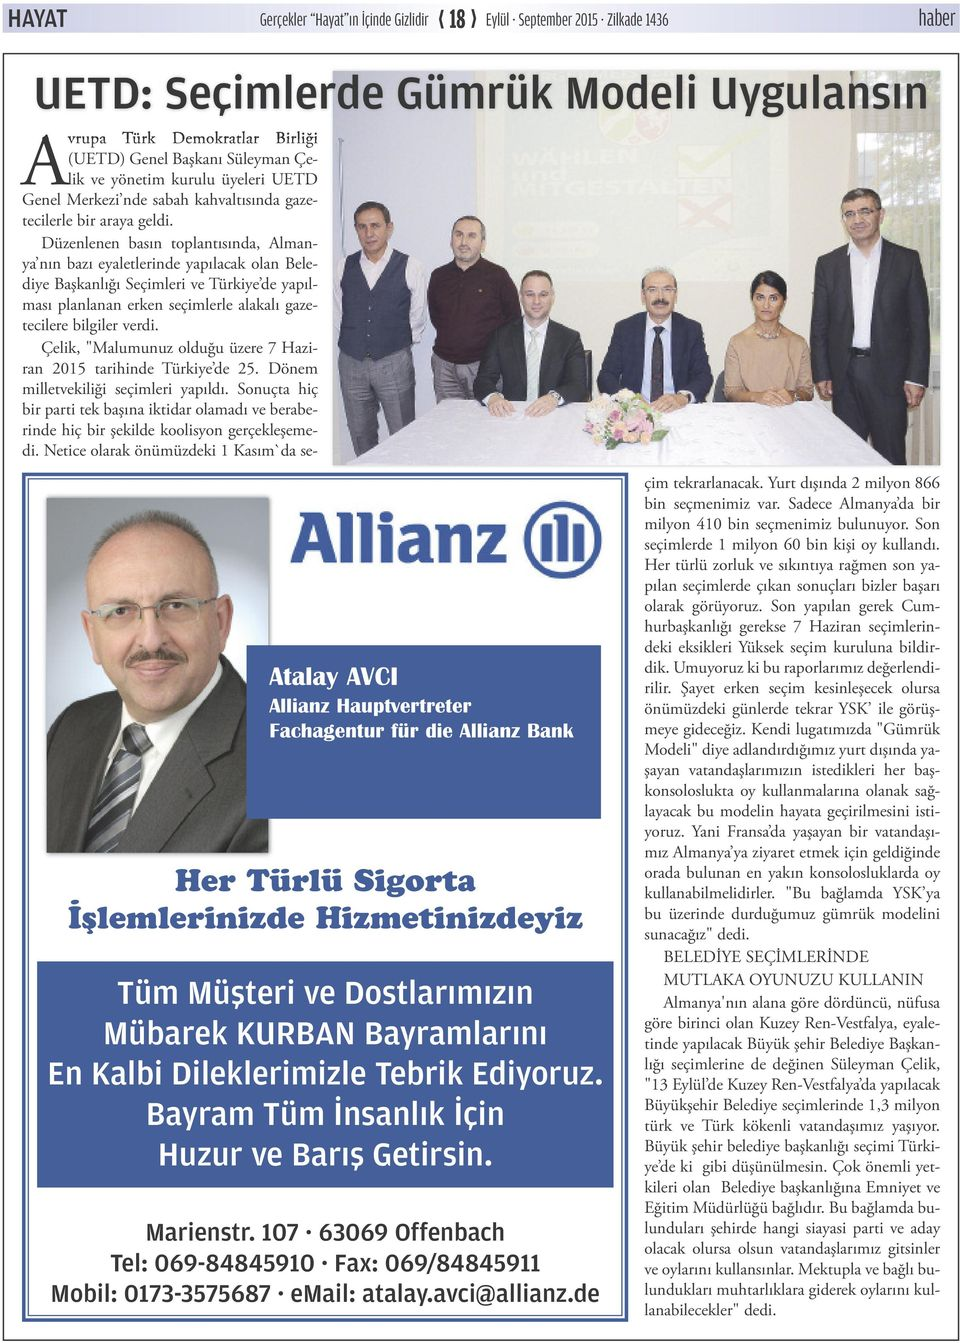 Marienstr. 107 63069 Offenbach Tel: 069-84845910 Fax: 069/84845911 Mobil: 0173-3575687 email: atalay.avci@allianz.